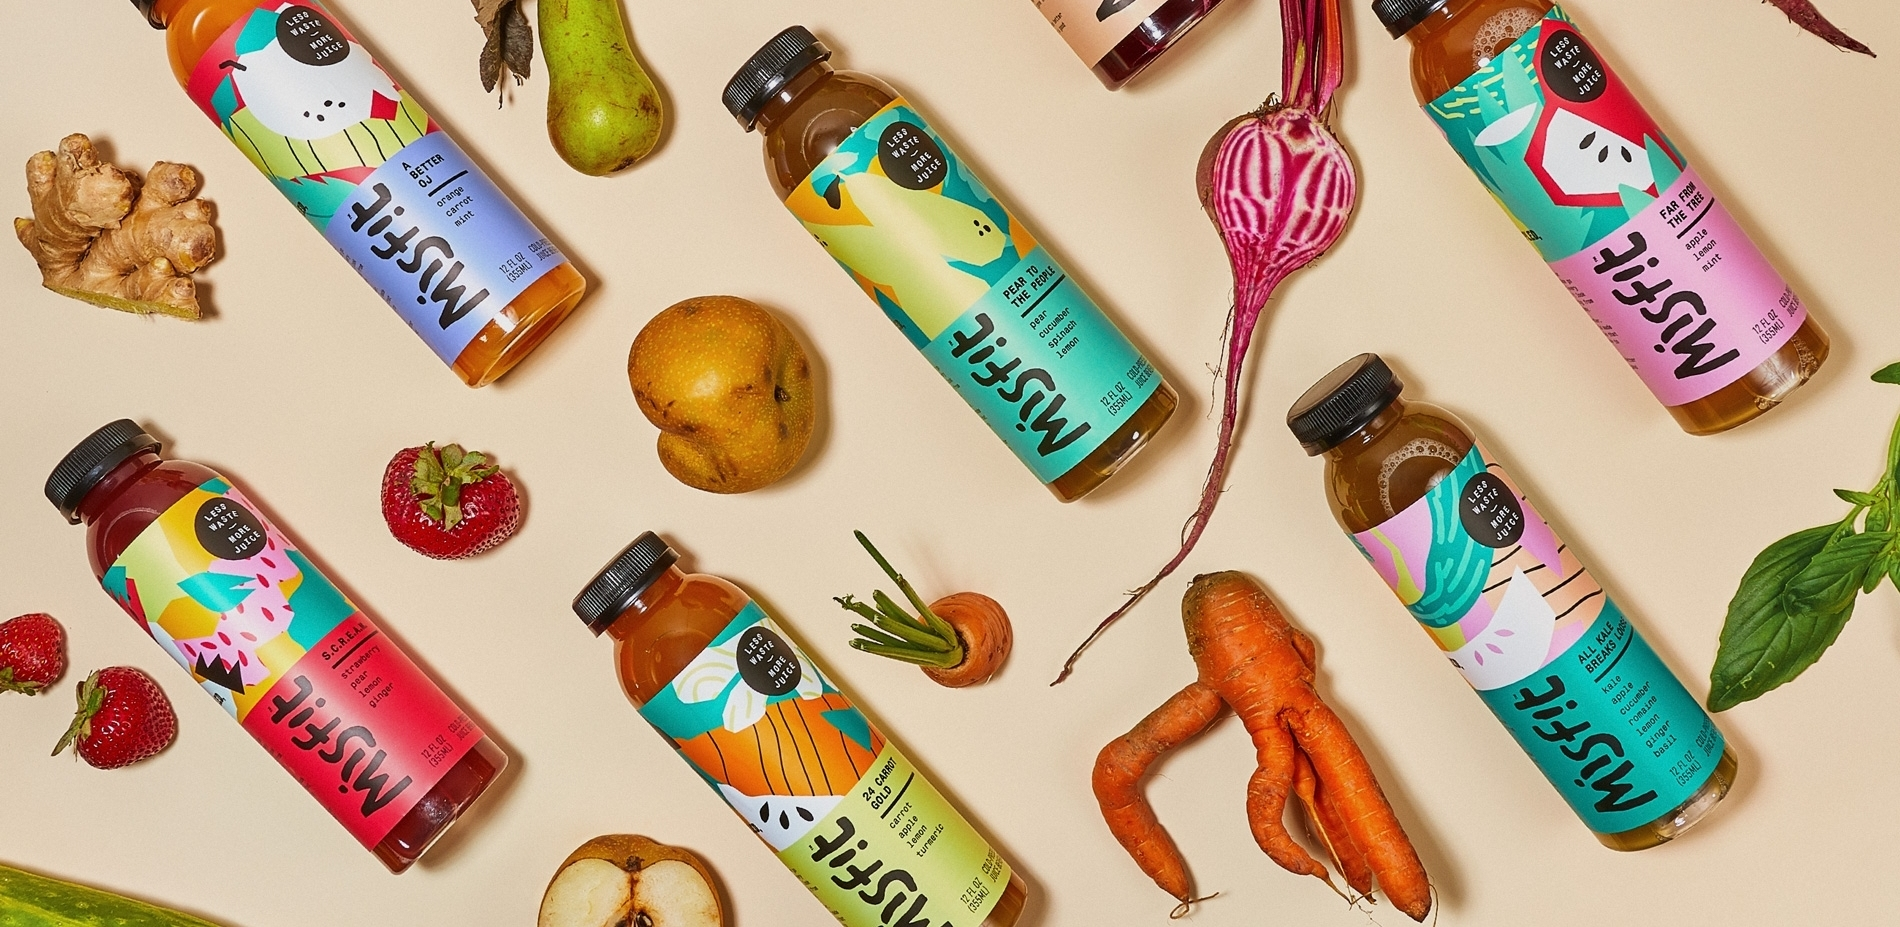 misfit-juicery-product-header.jpg